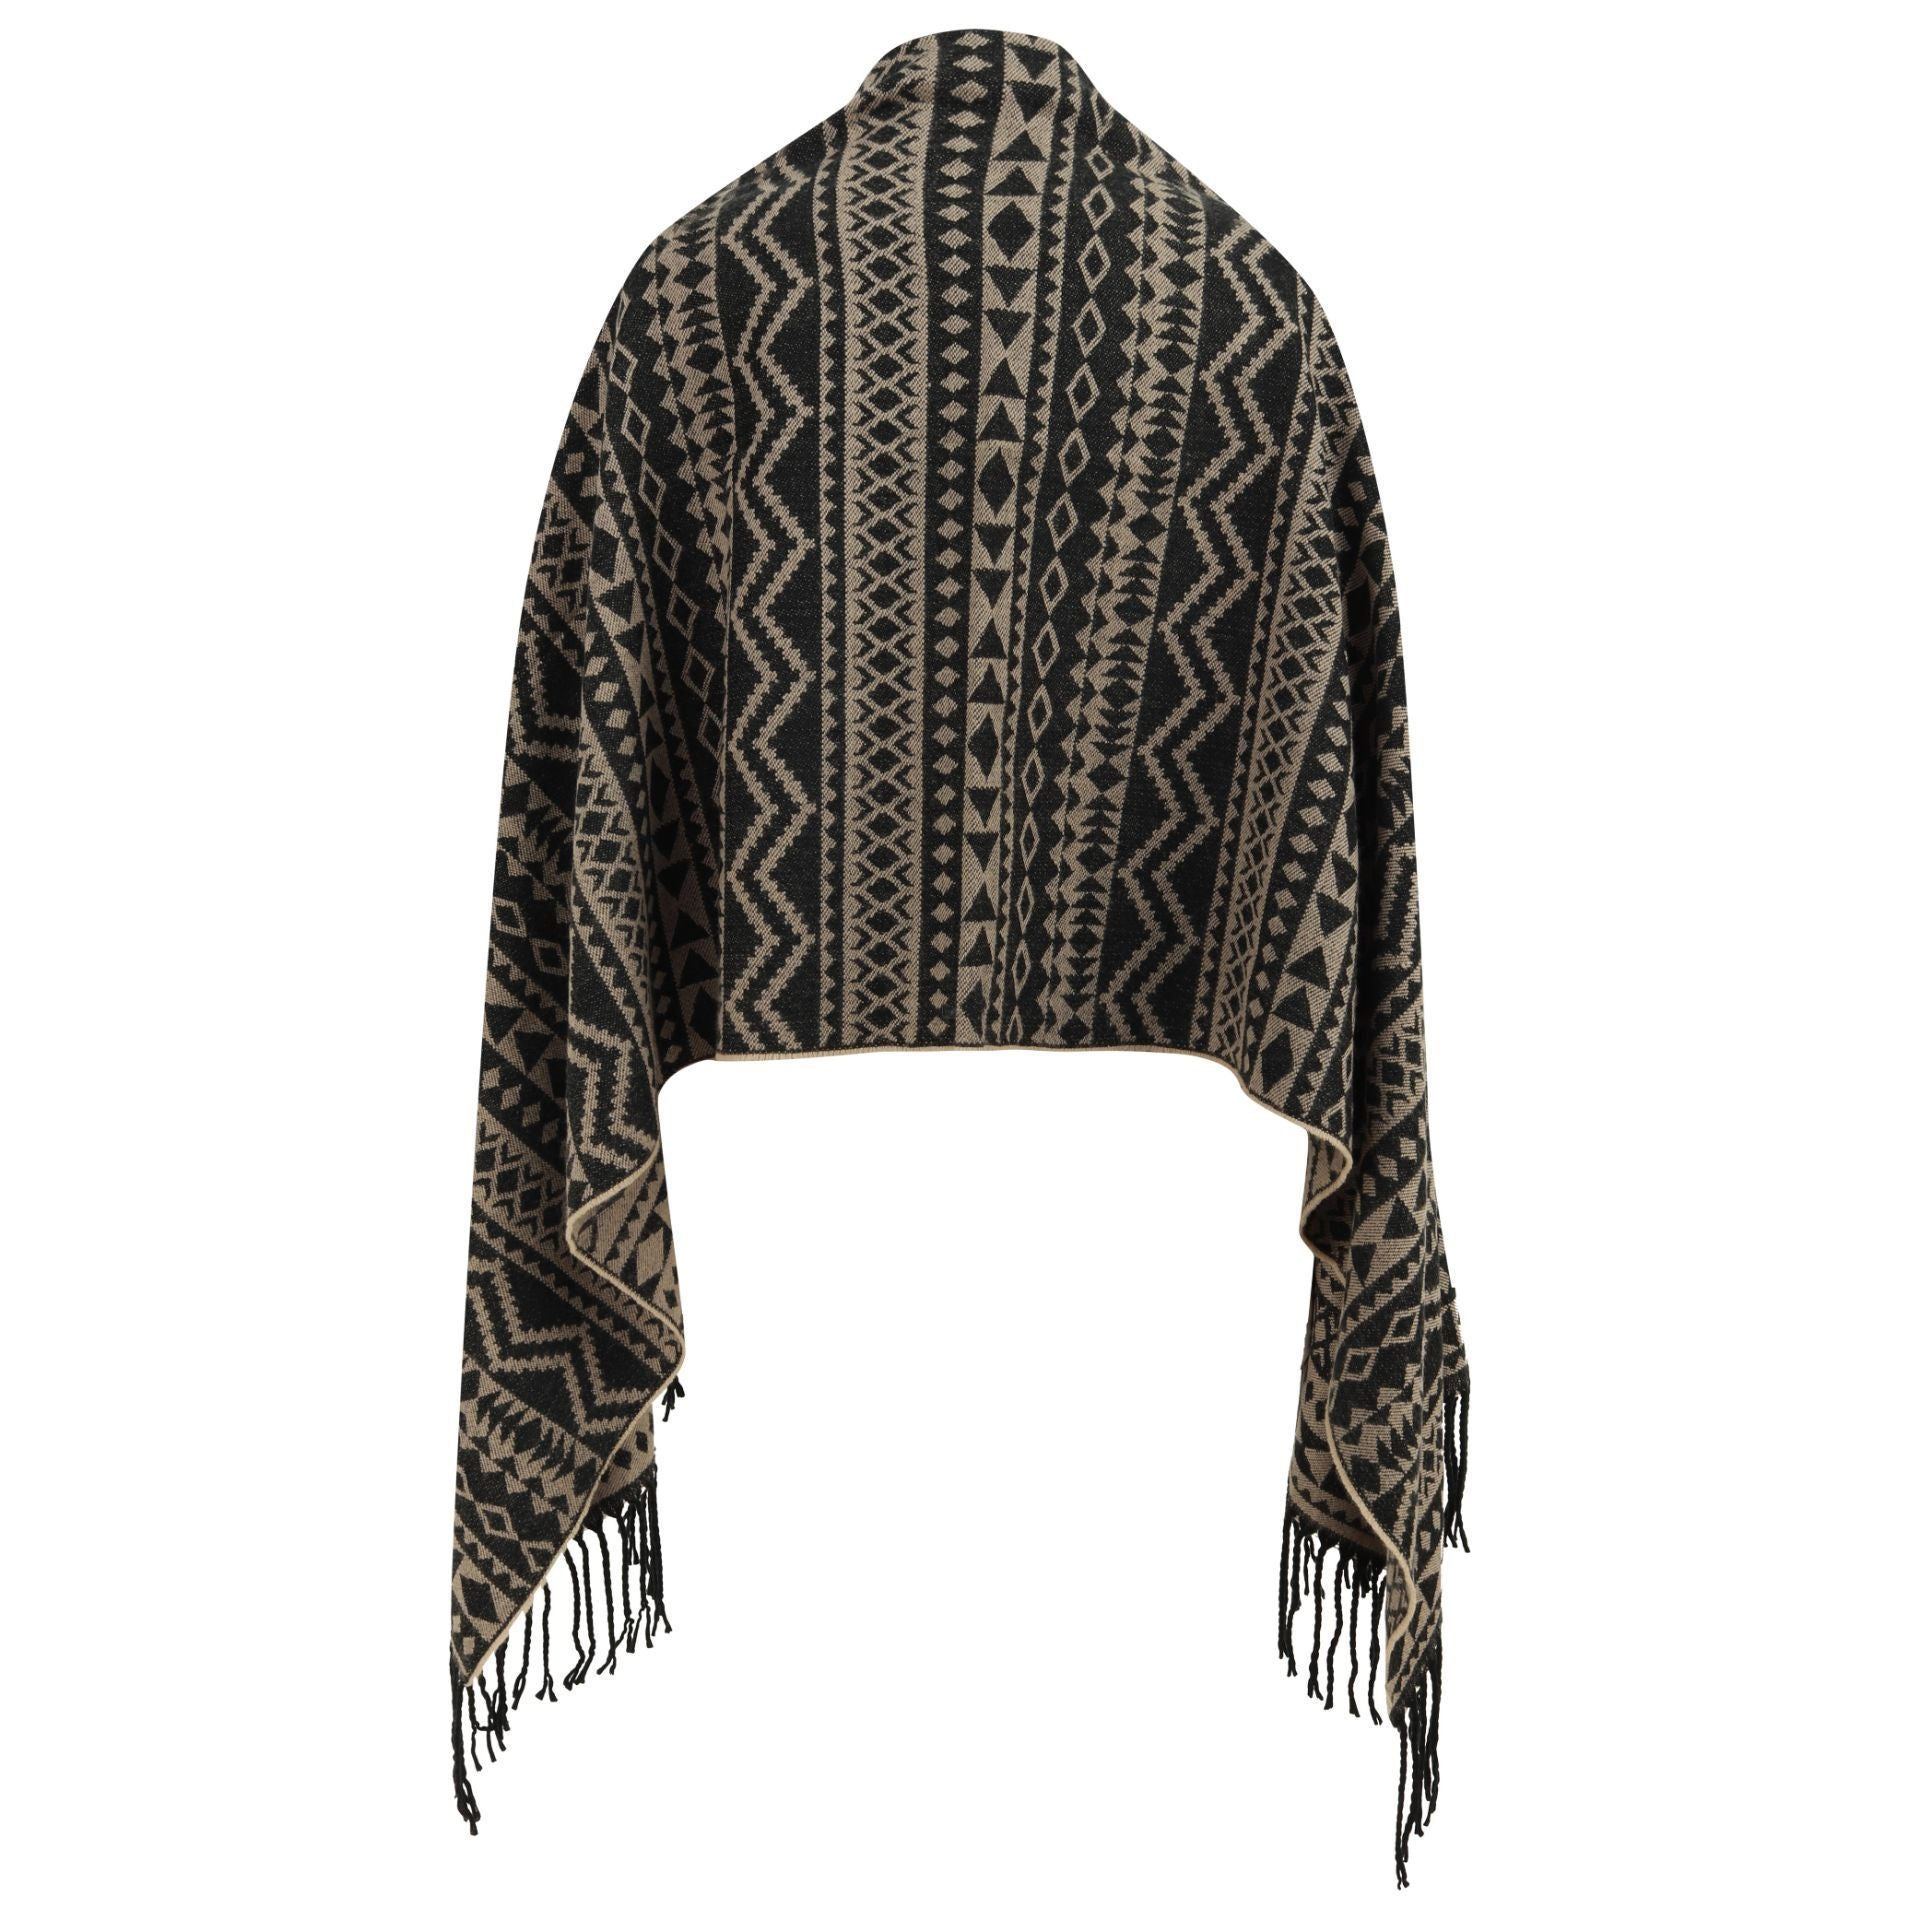 East Village Brooklyn Scarf - aztec black & ivory